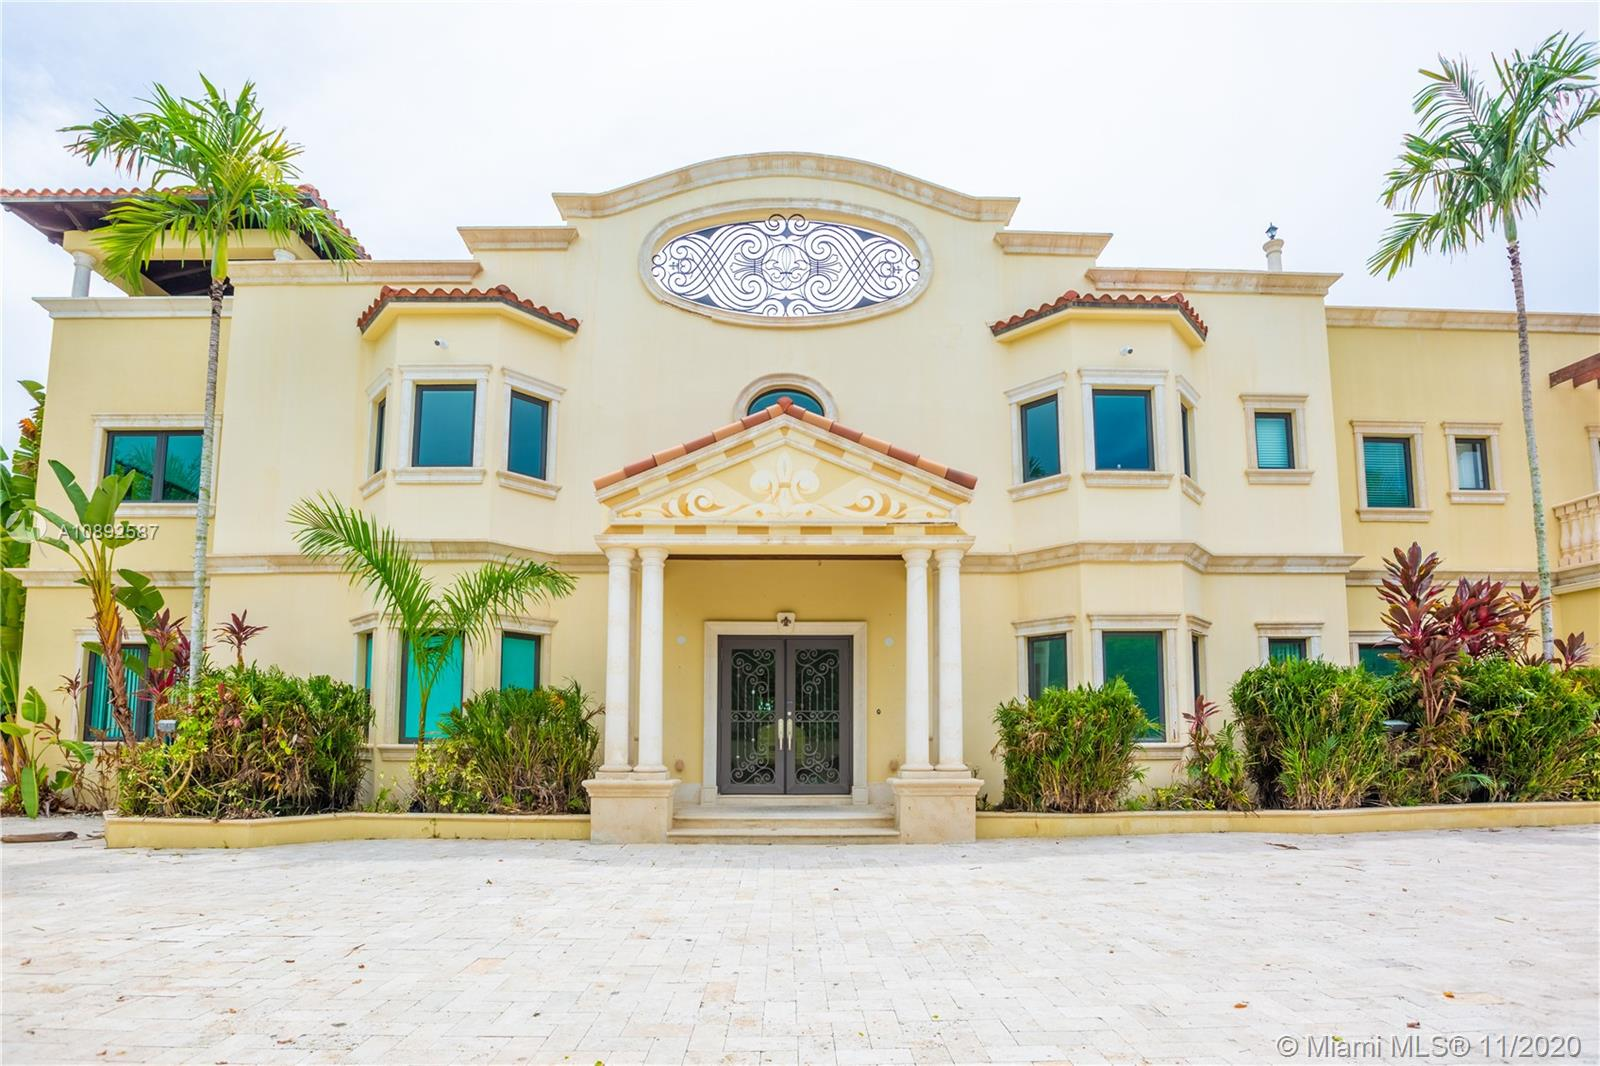 Magnificent 9 Bed/8 Full Bath/2 Half Bath 2 Story Gated Villa in the Heart of Miami. Located on Almost an Acre of Land, This Stunning Home has Amazing Exterior Features Including a Salt Water Pool w/ Spa,Pool Cabana, Covered Back Patio with Fountain, Roof Top Terrace W/Cabana to Entertain Family and Friends,a Pond with Bridge and Luscious Landscaping.Interior Features Include White Ceramic Tile Floors,an Elevator,Grand Staircase, a Laundry Room with Chute From the 2nd Floor, and Maids/In-Law Quarters. Master Bedroom Has Its Own Fire Place, 2 Walk-In Closets, and Master Bath Features His and Her Bathrooms, His and Her Sinks, Separate Tub and Shower. To help visualize this home's floorplan and to highlight its potential, virtual furnishings may have been added to photos found in this listing